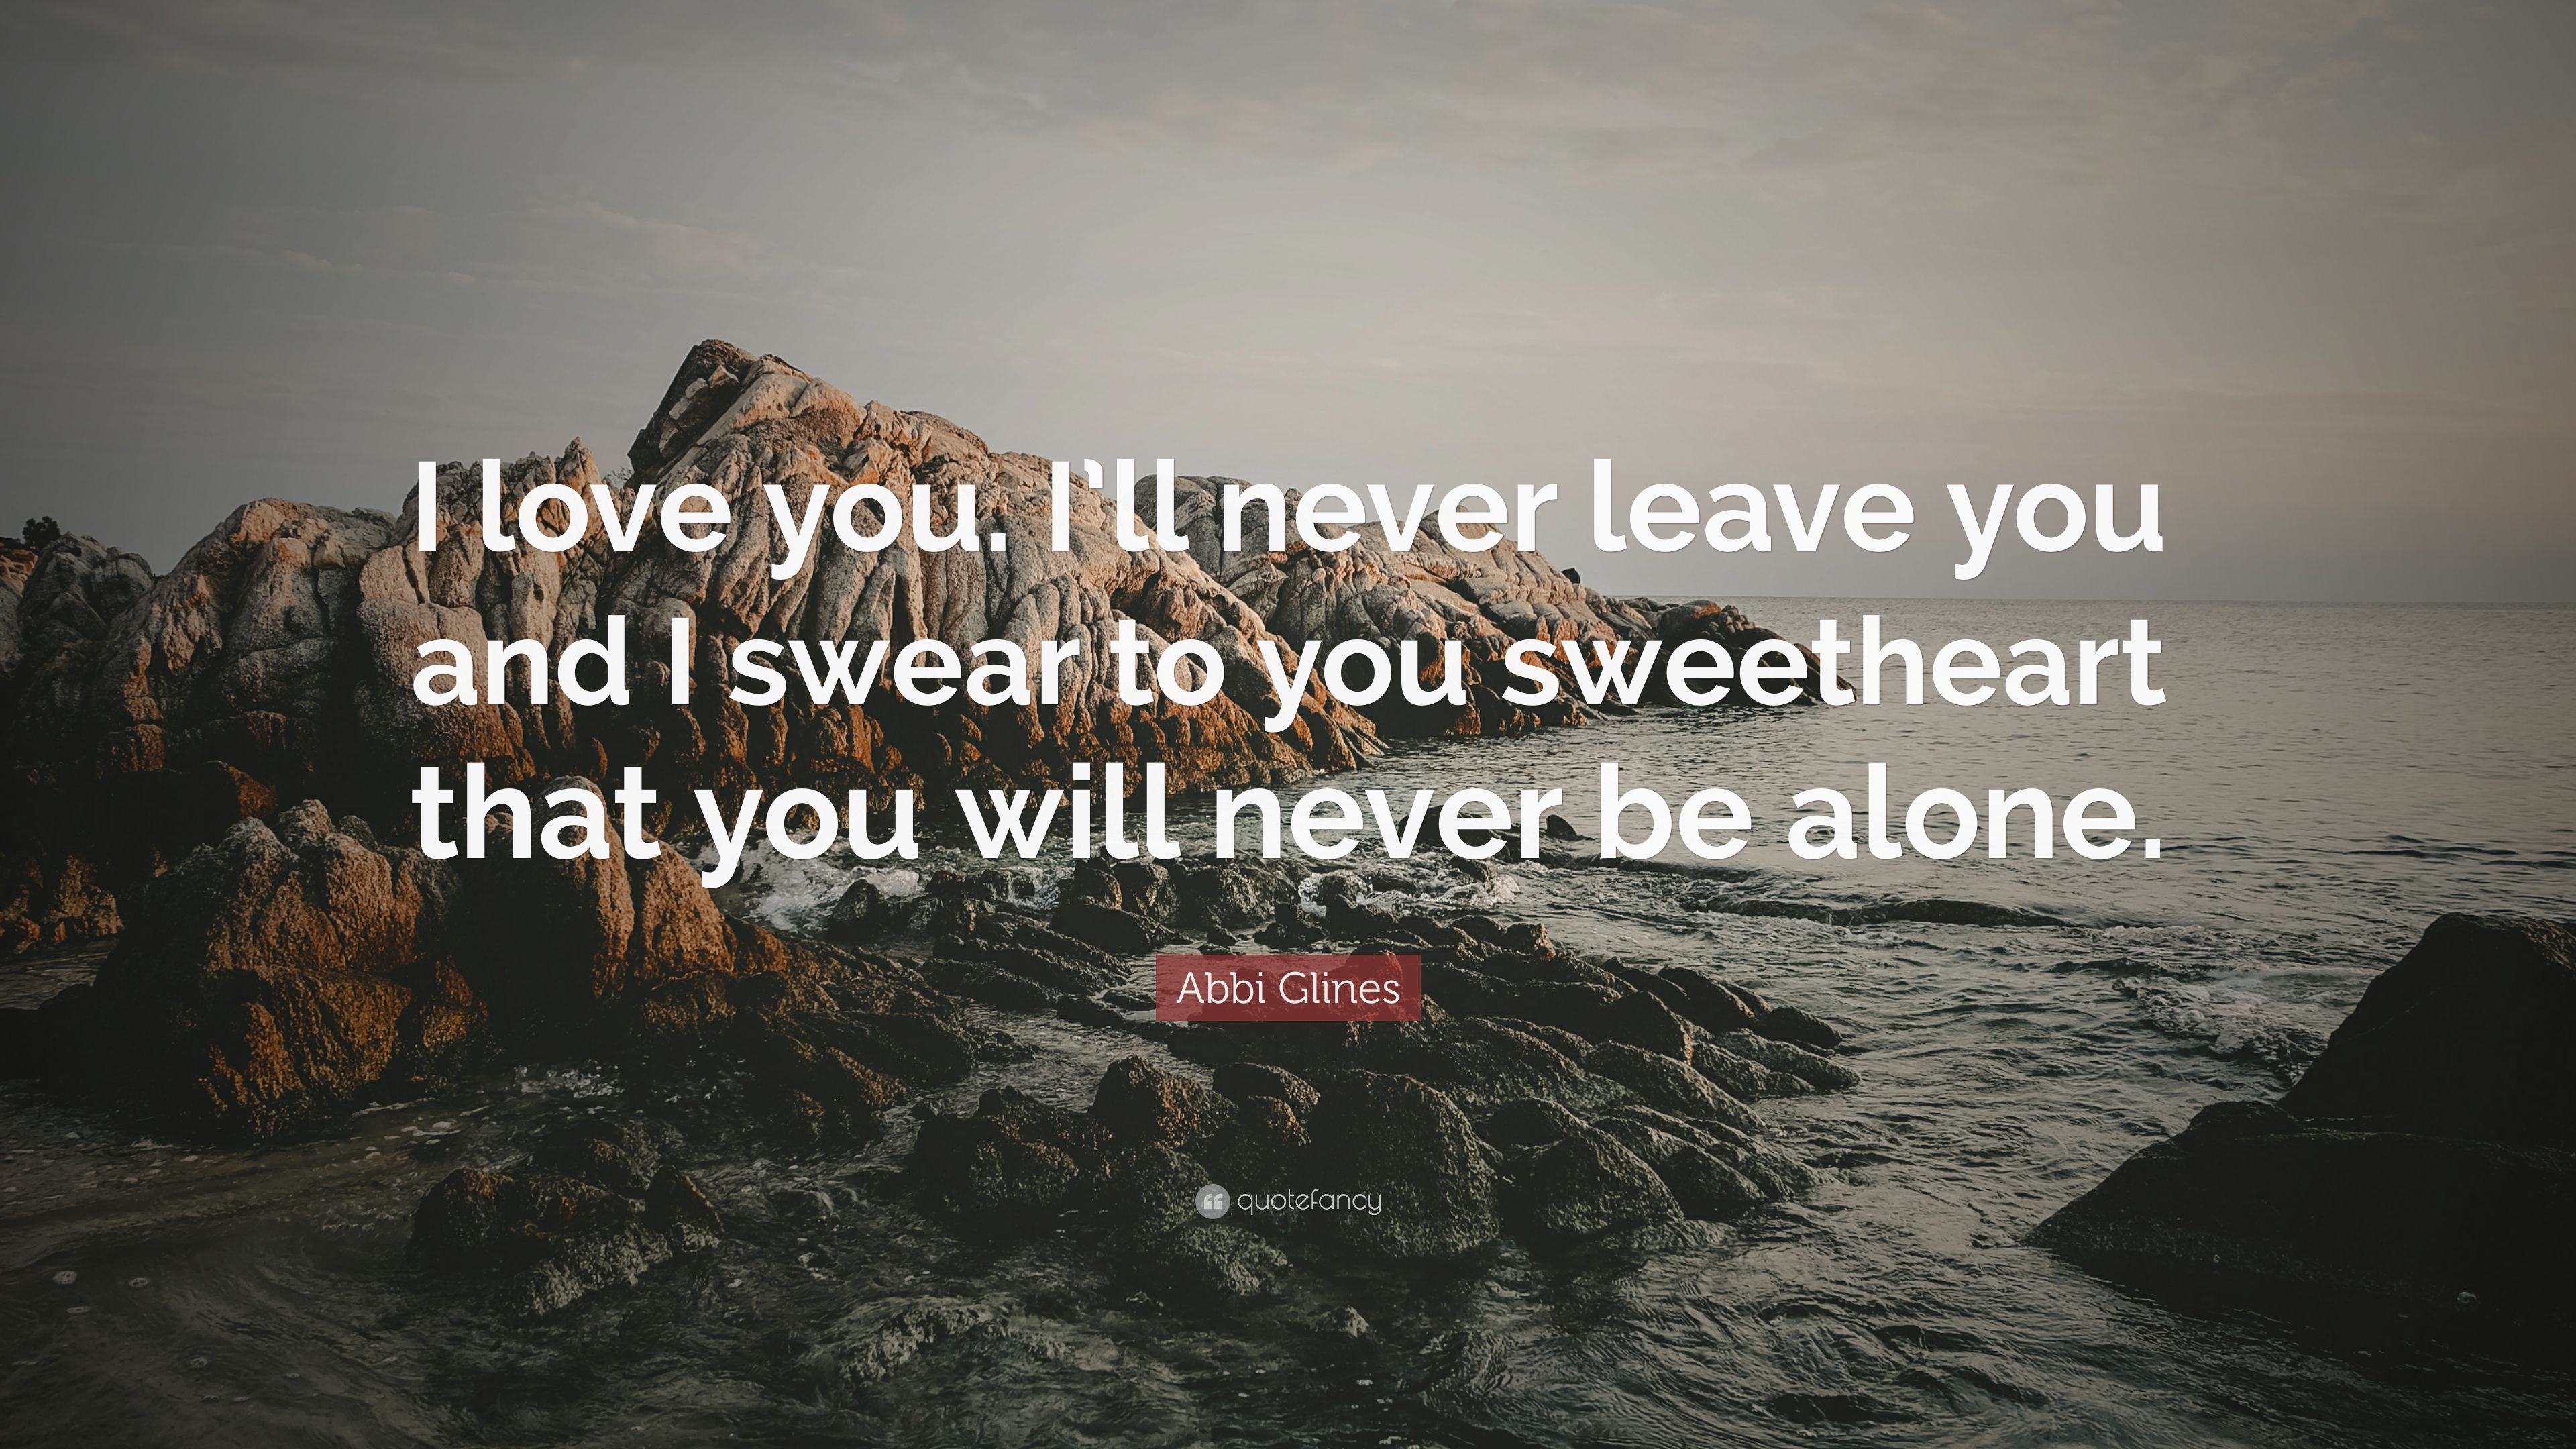 Abbi Glines Quote I Love You Ill Never Leave You And I Swear To